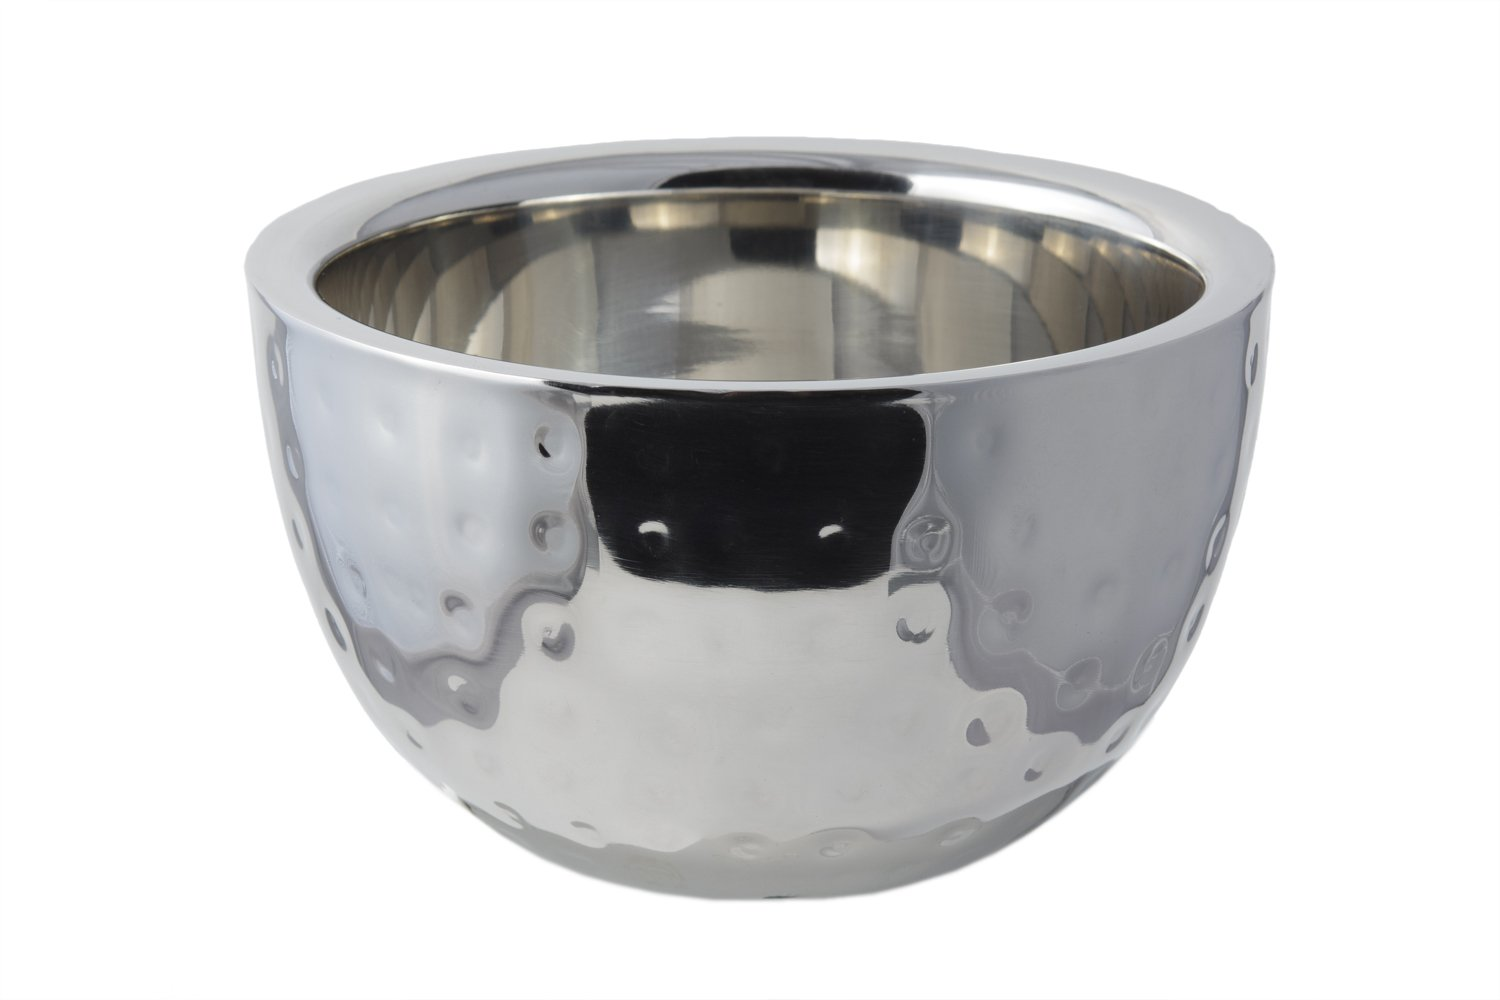 Bon Chef 61258 Stainless Steel Double Wall Bowl, Hammer Finish, 1-1/4 quart Capacity, 6-1/4'' Diameter x 3-3/4'' Height